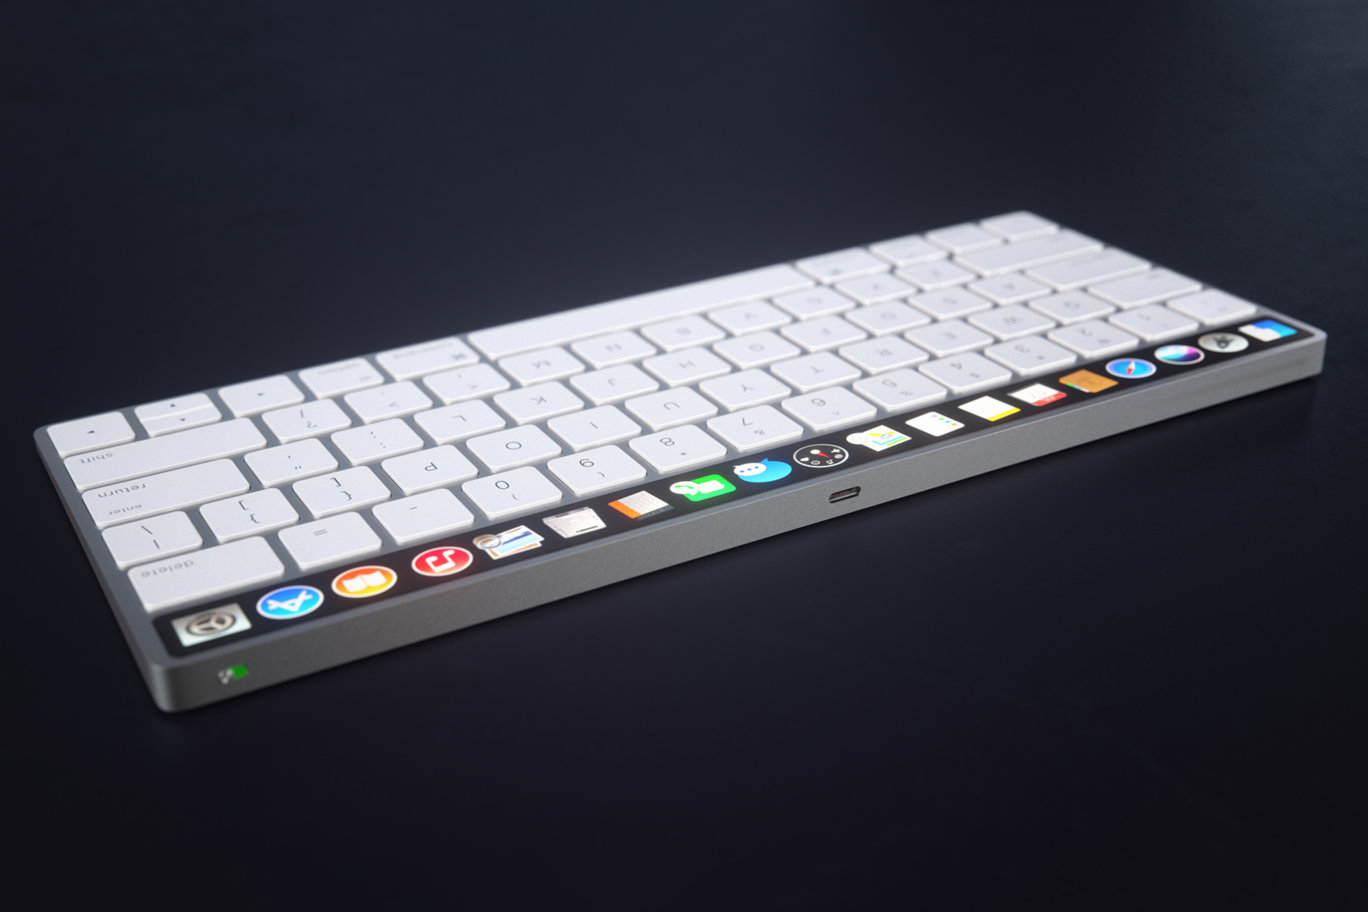 IMAC Keyboard with OLED Touch Bard 8